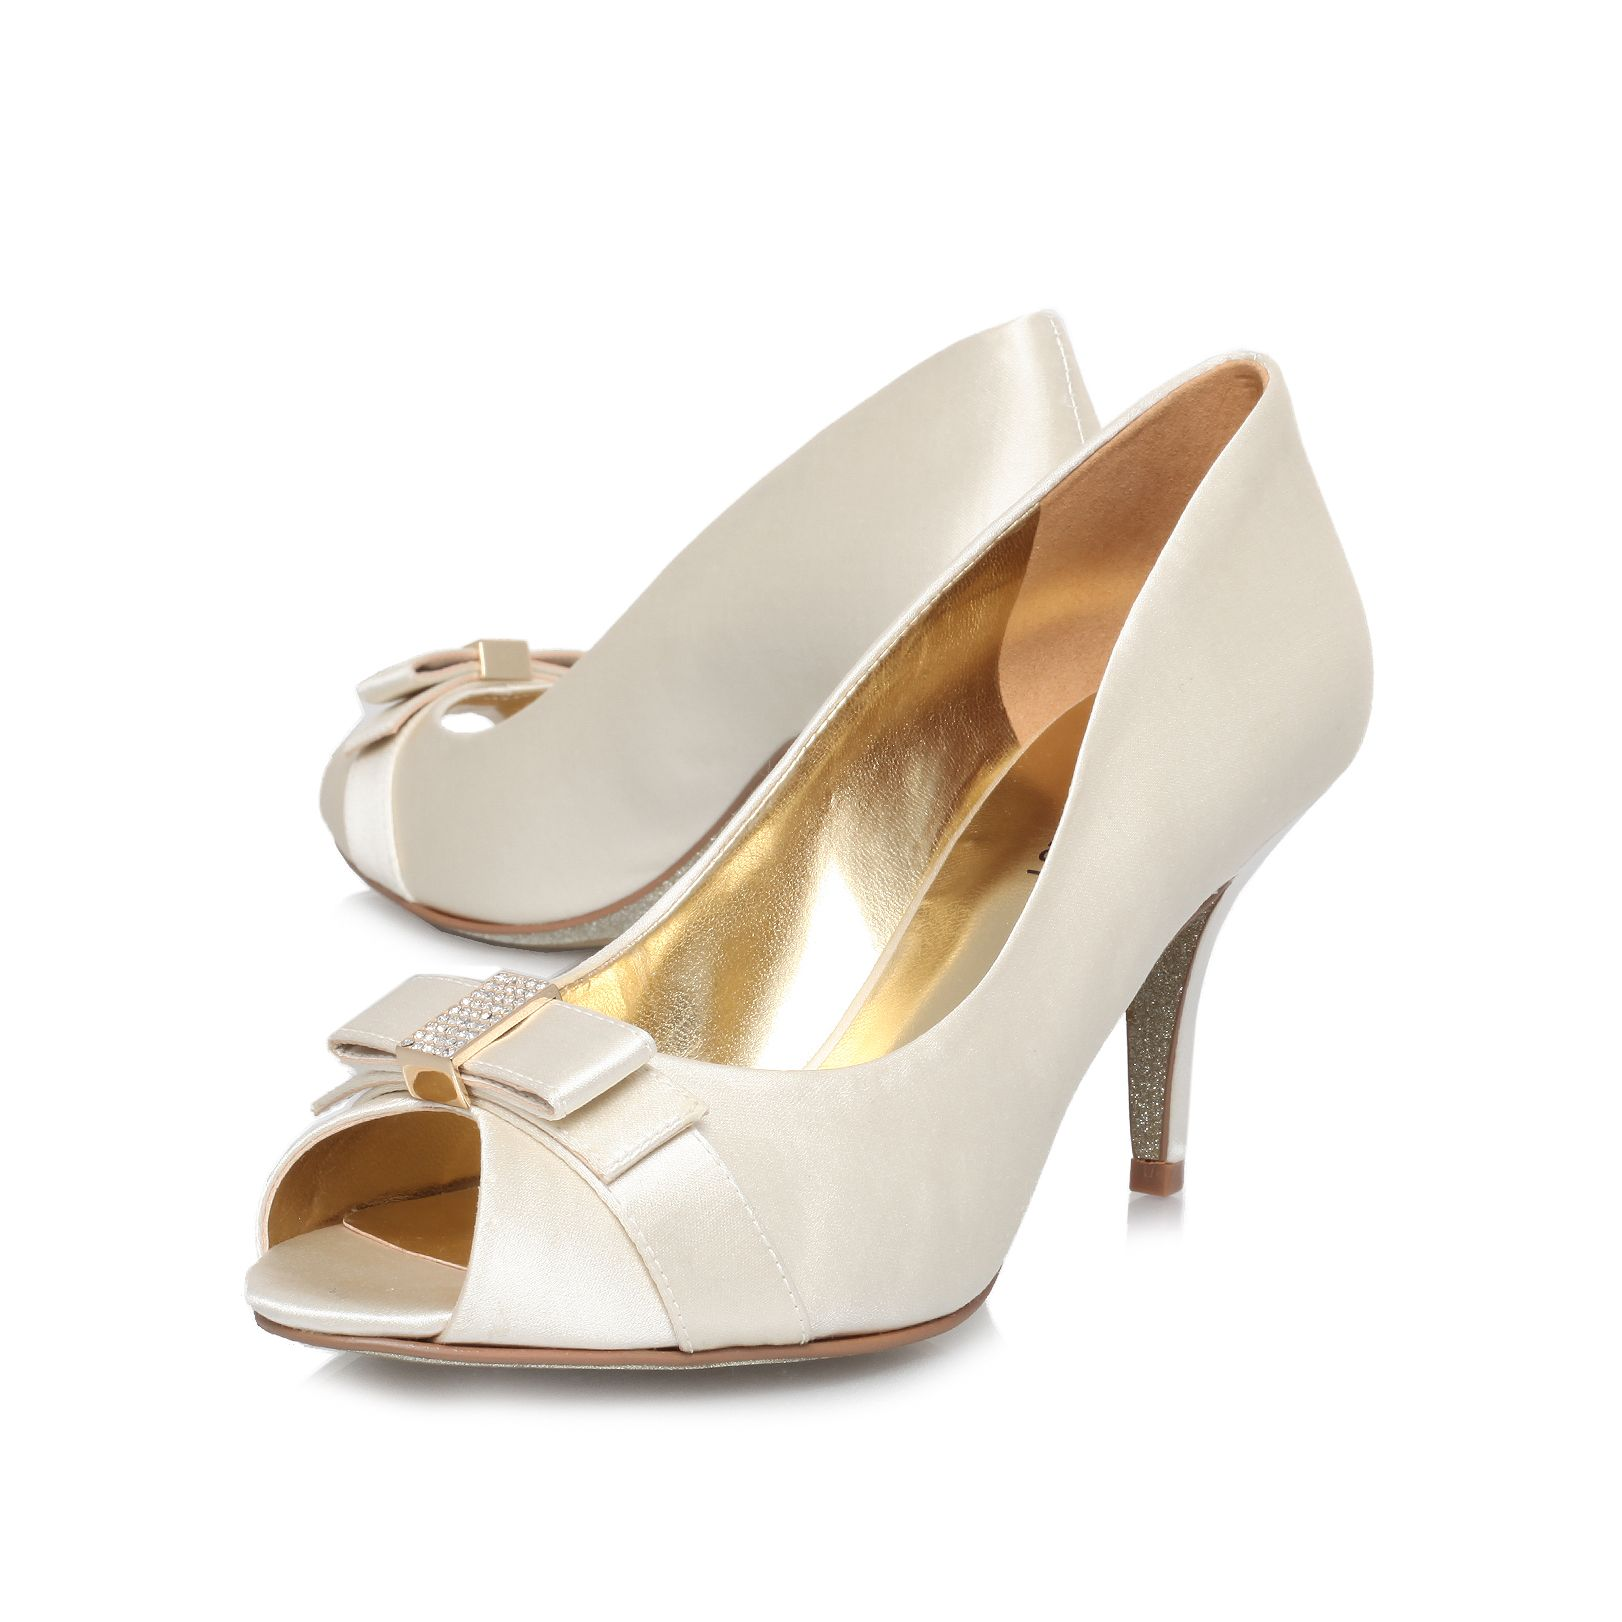 Olivia22 mid heeled court shoes